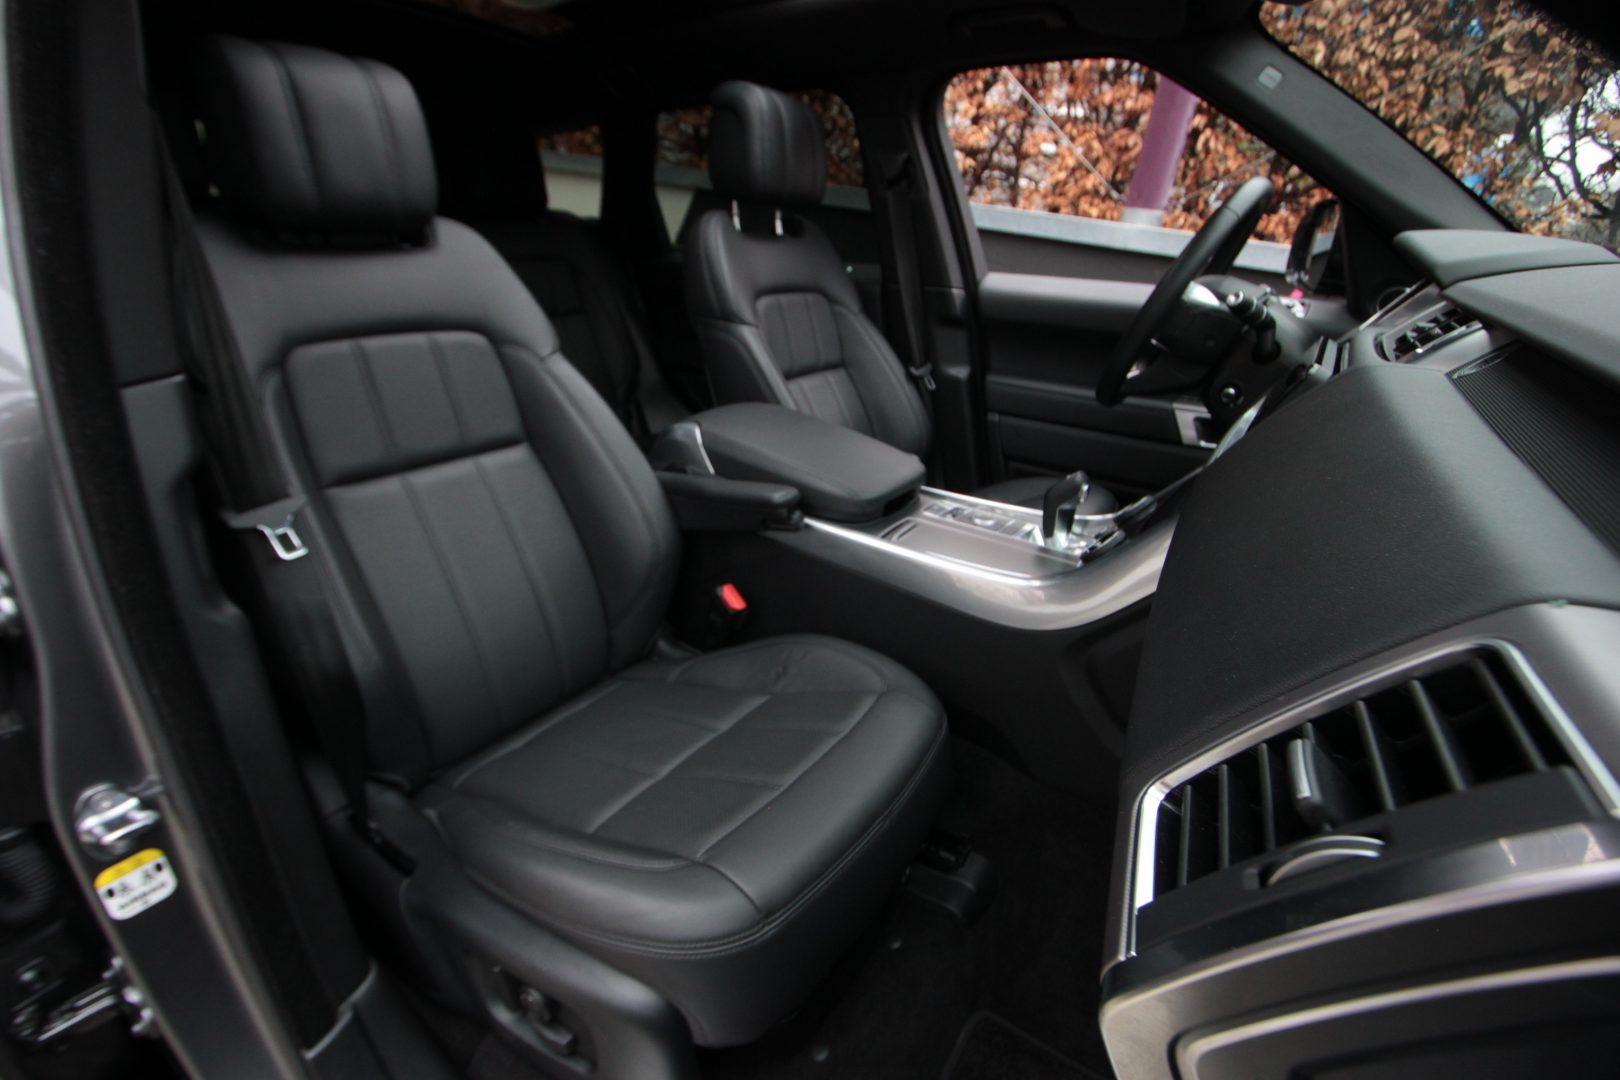 AIL Land Rover Range Rover Sport HSE 7